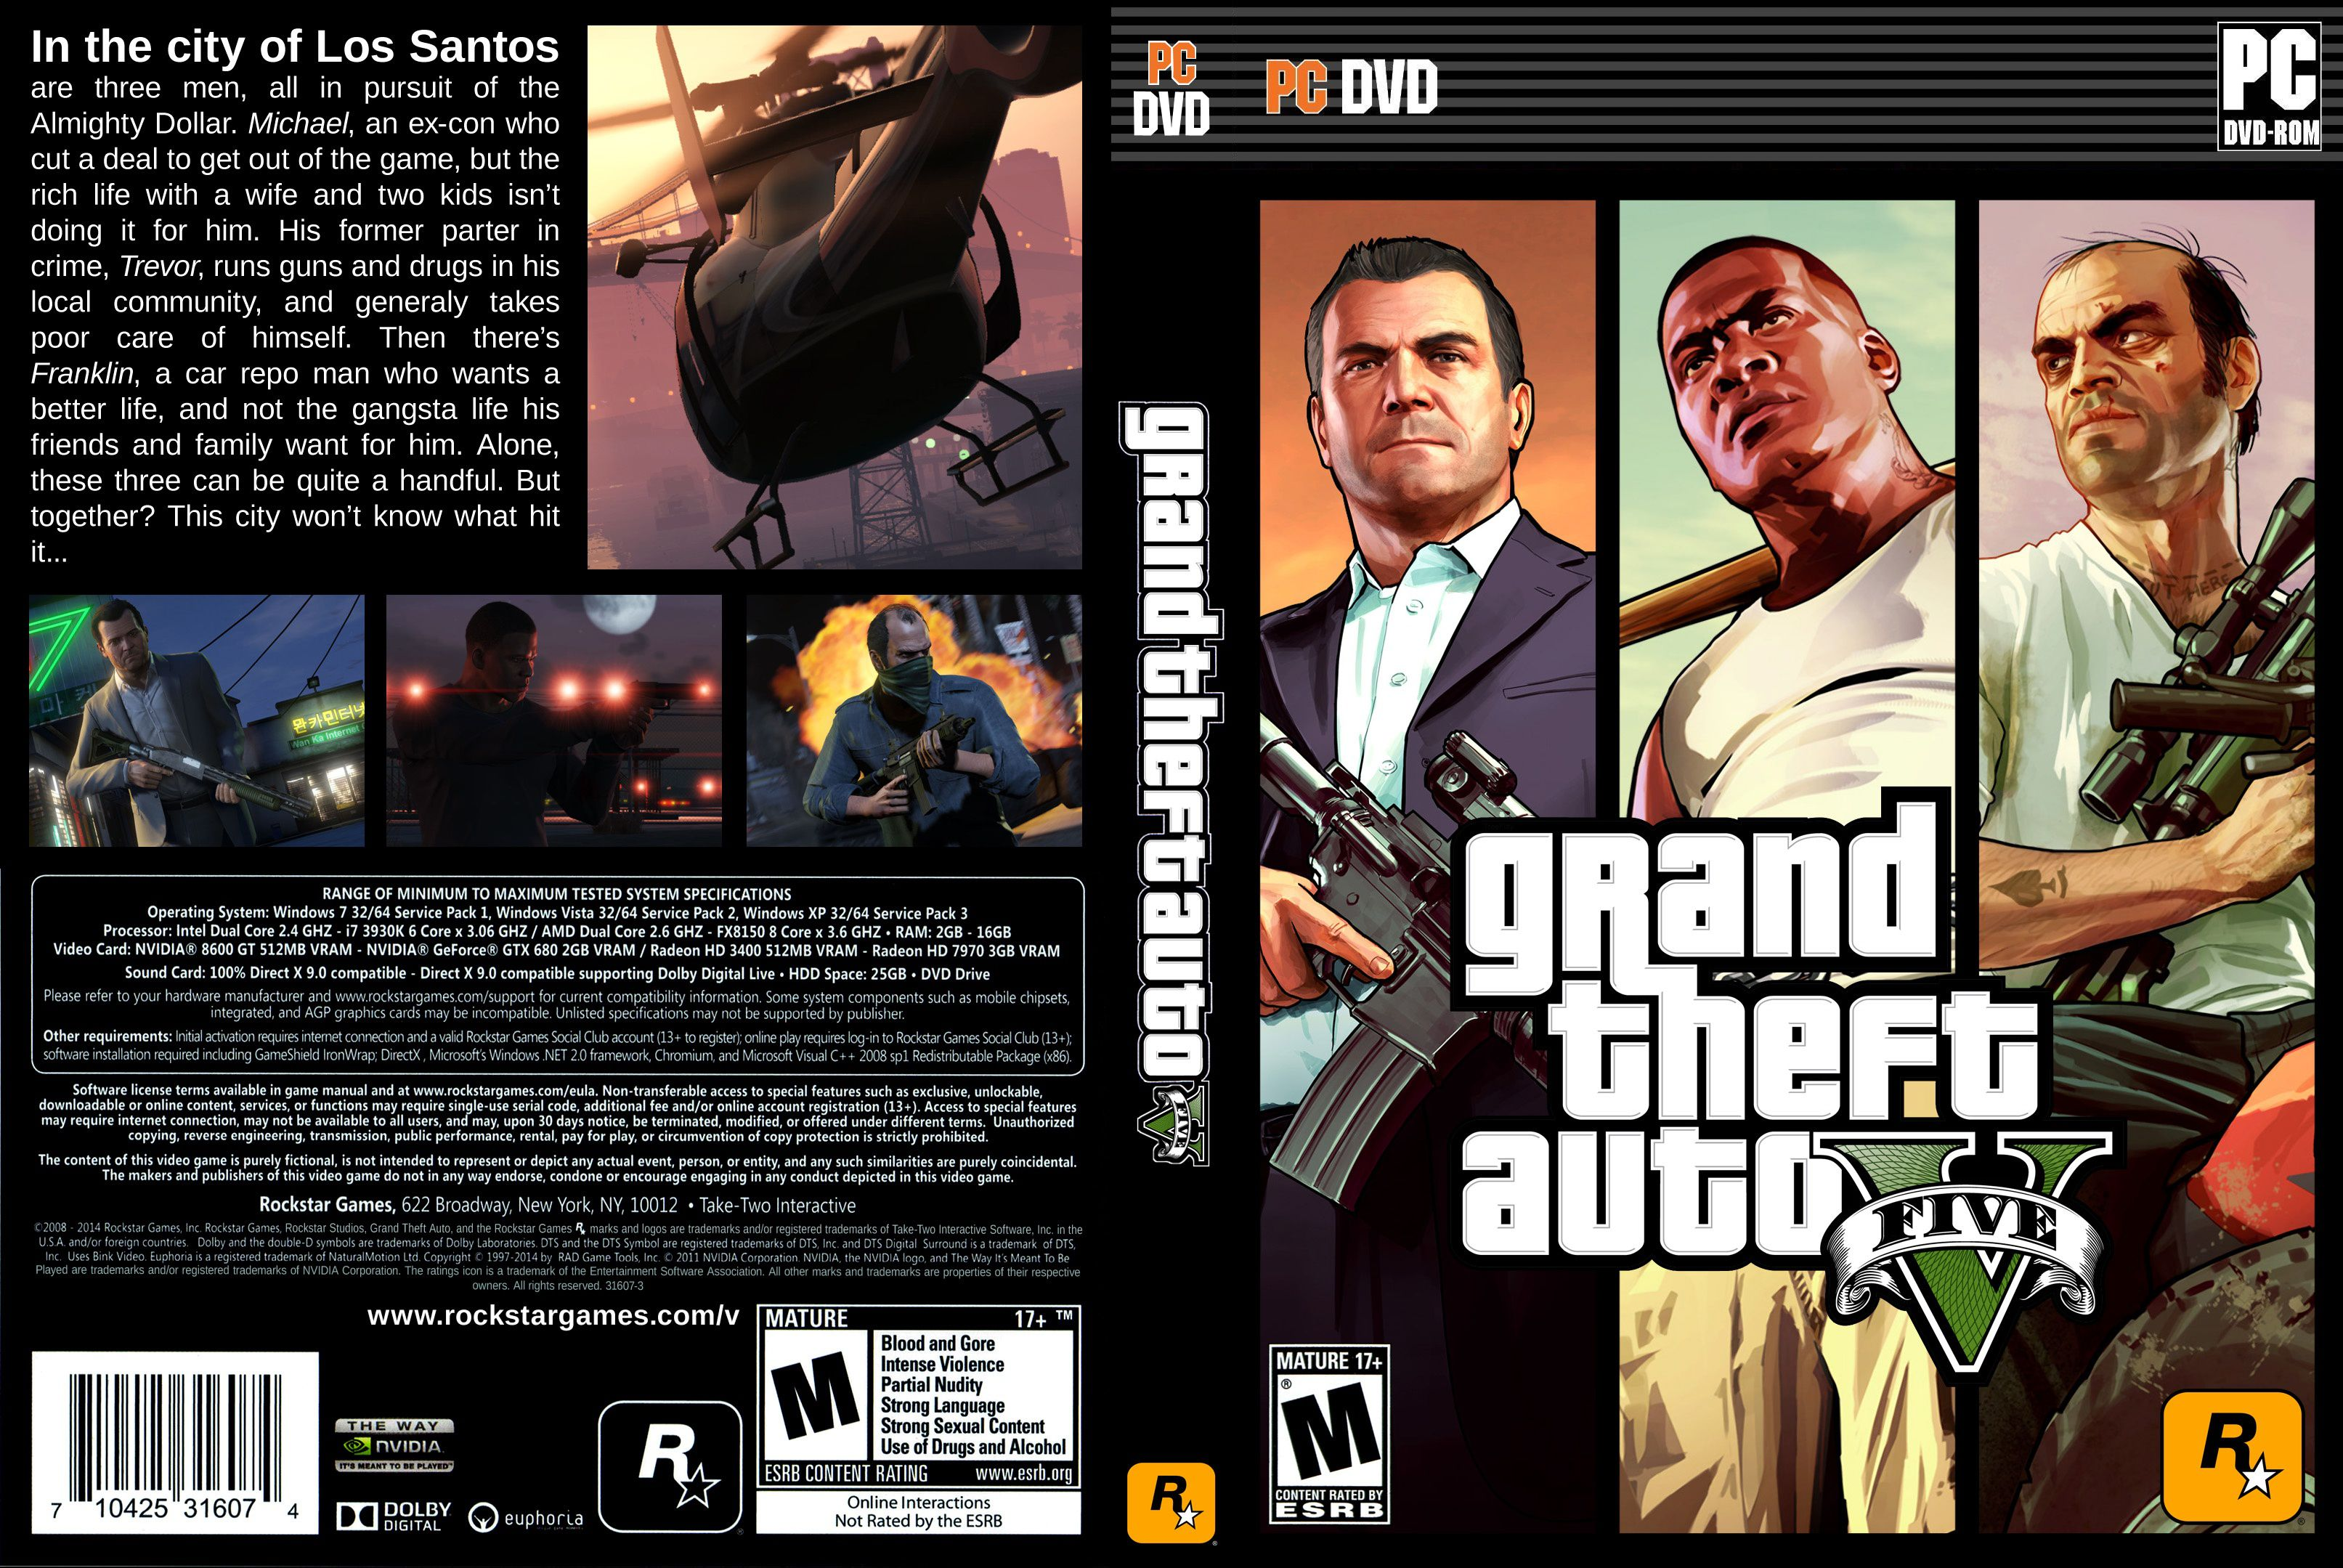 Grand theft auto v: the manual download.